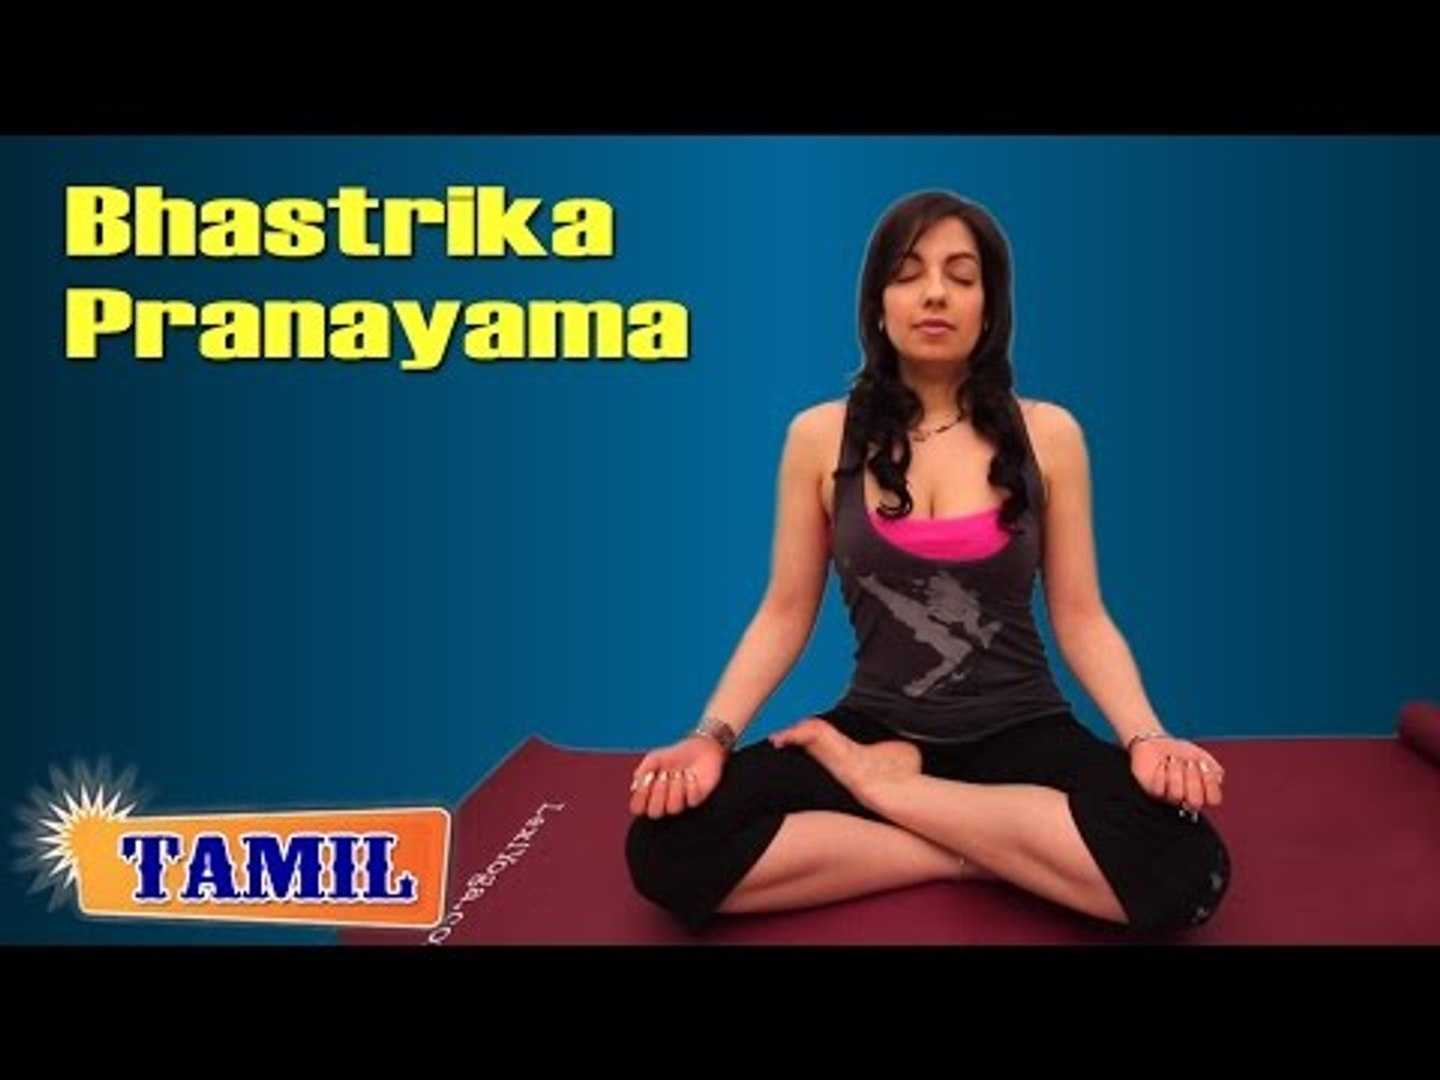 Bhastrika Pranayama For Blood Pressure - Reduce Blood Pressure - Treatment,  Tips & Cure in Tamil